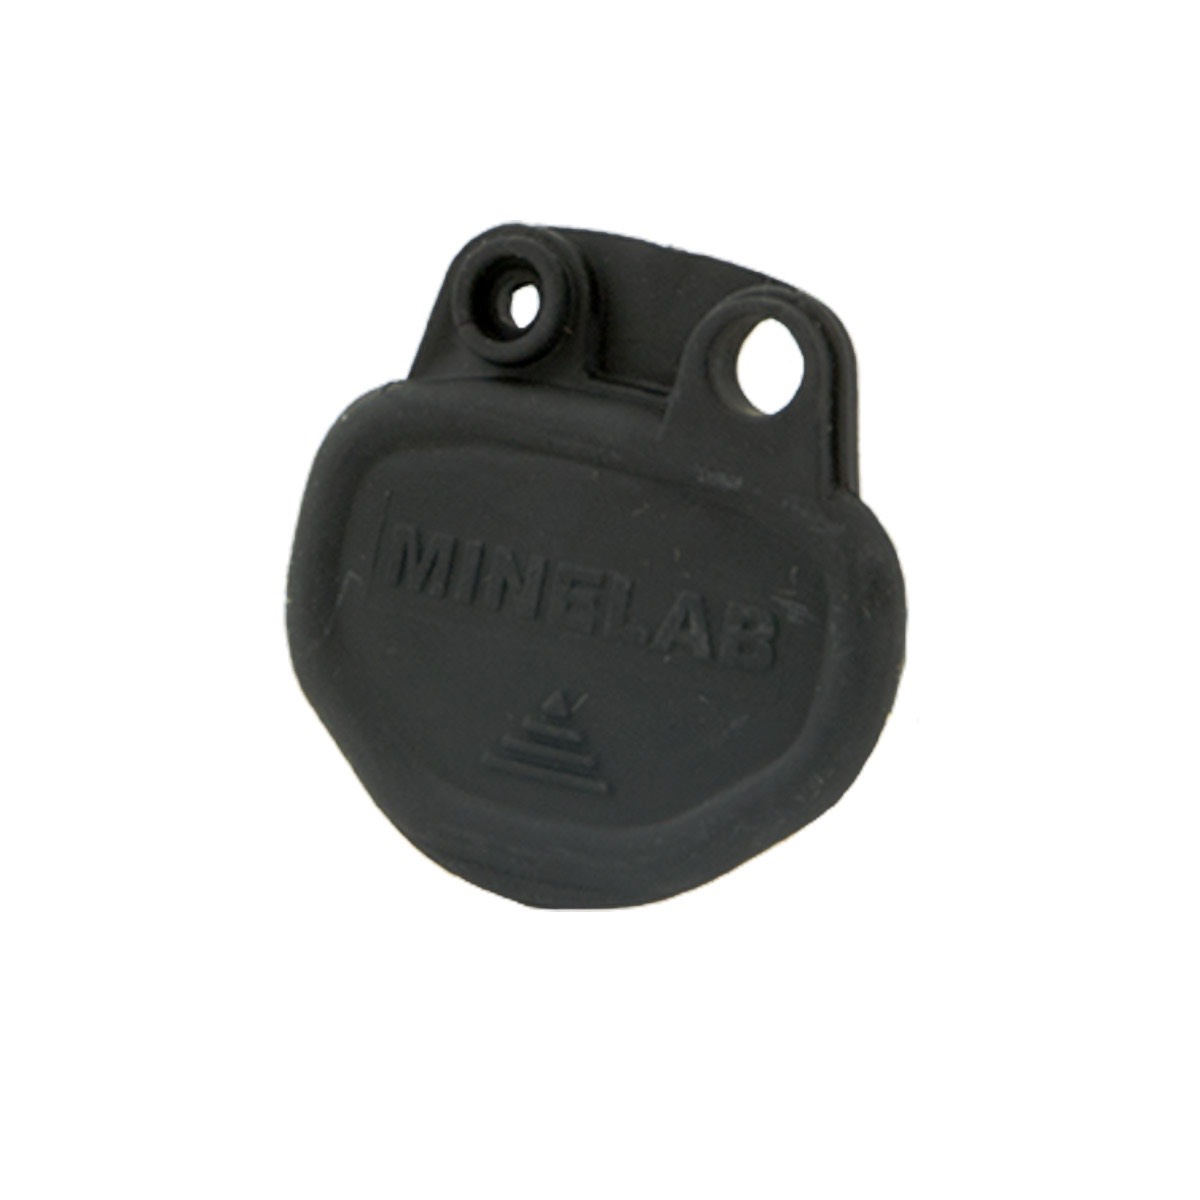 4309-0049, Handle Seal for E-TRAC